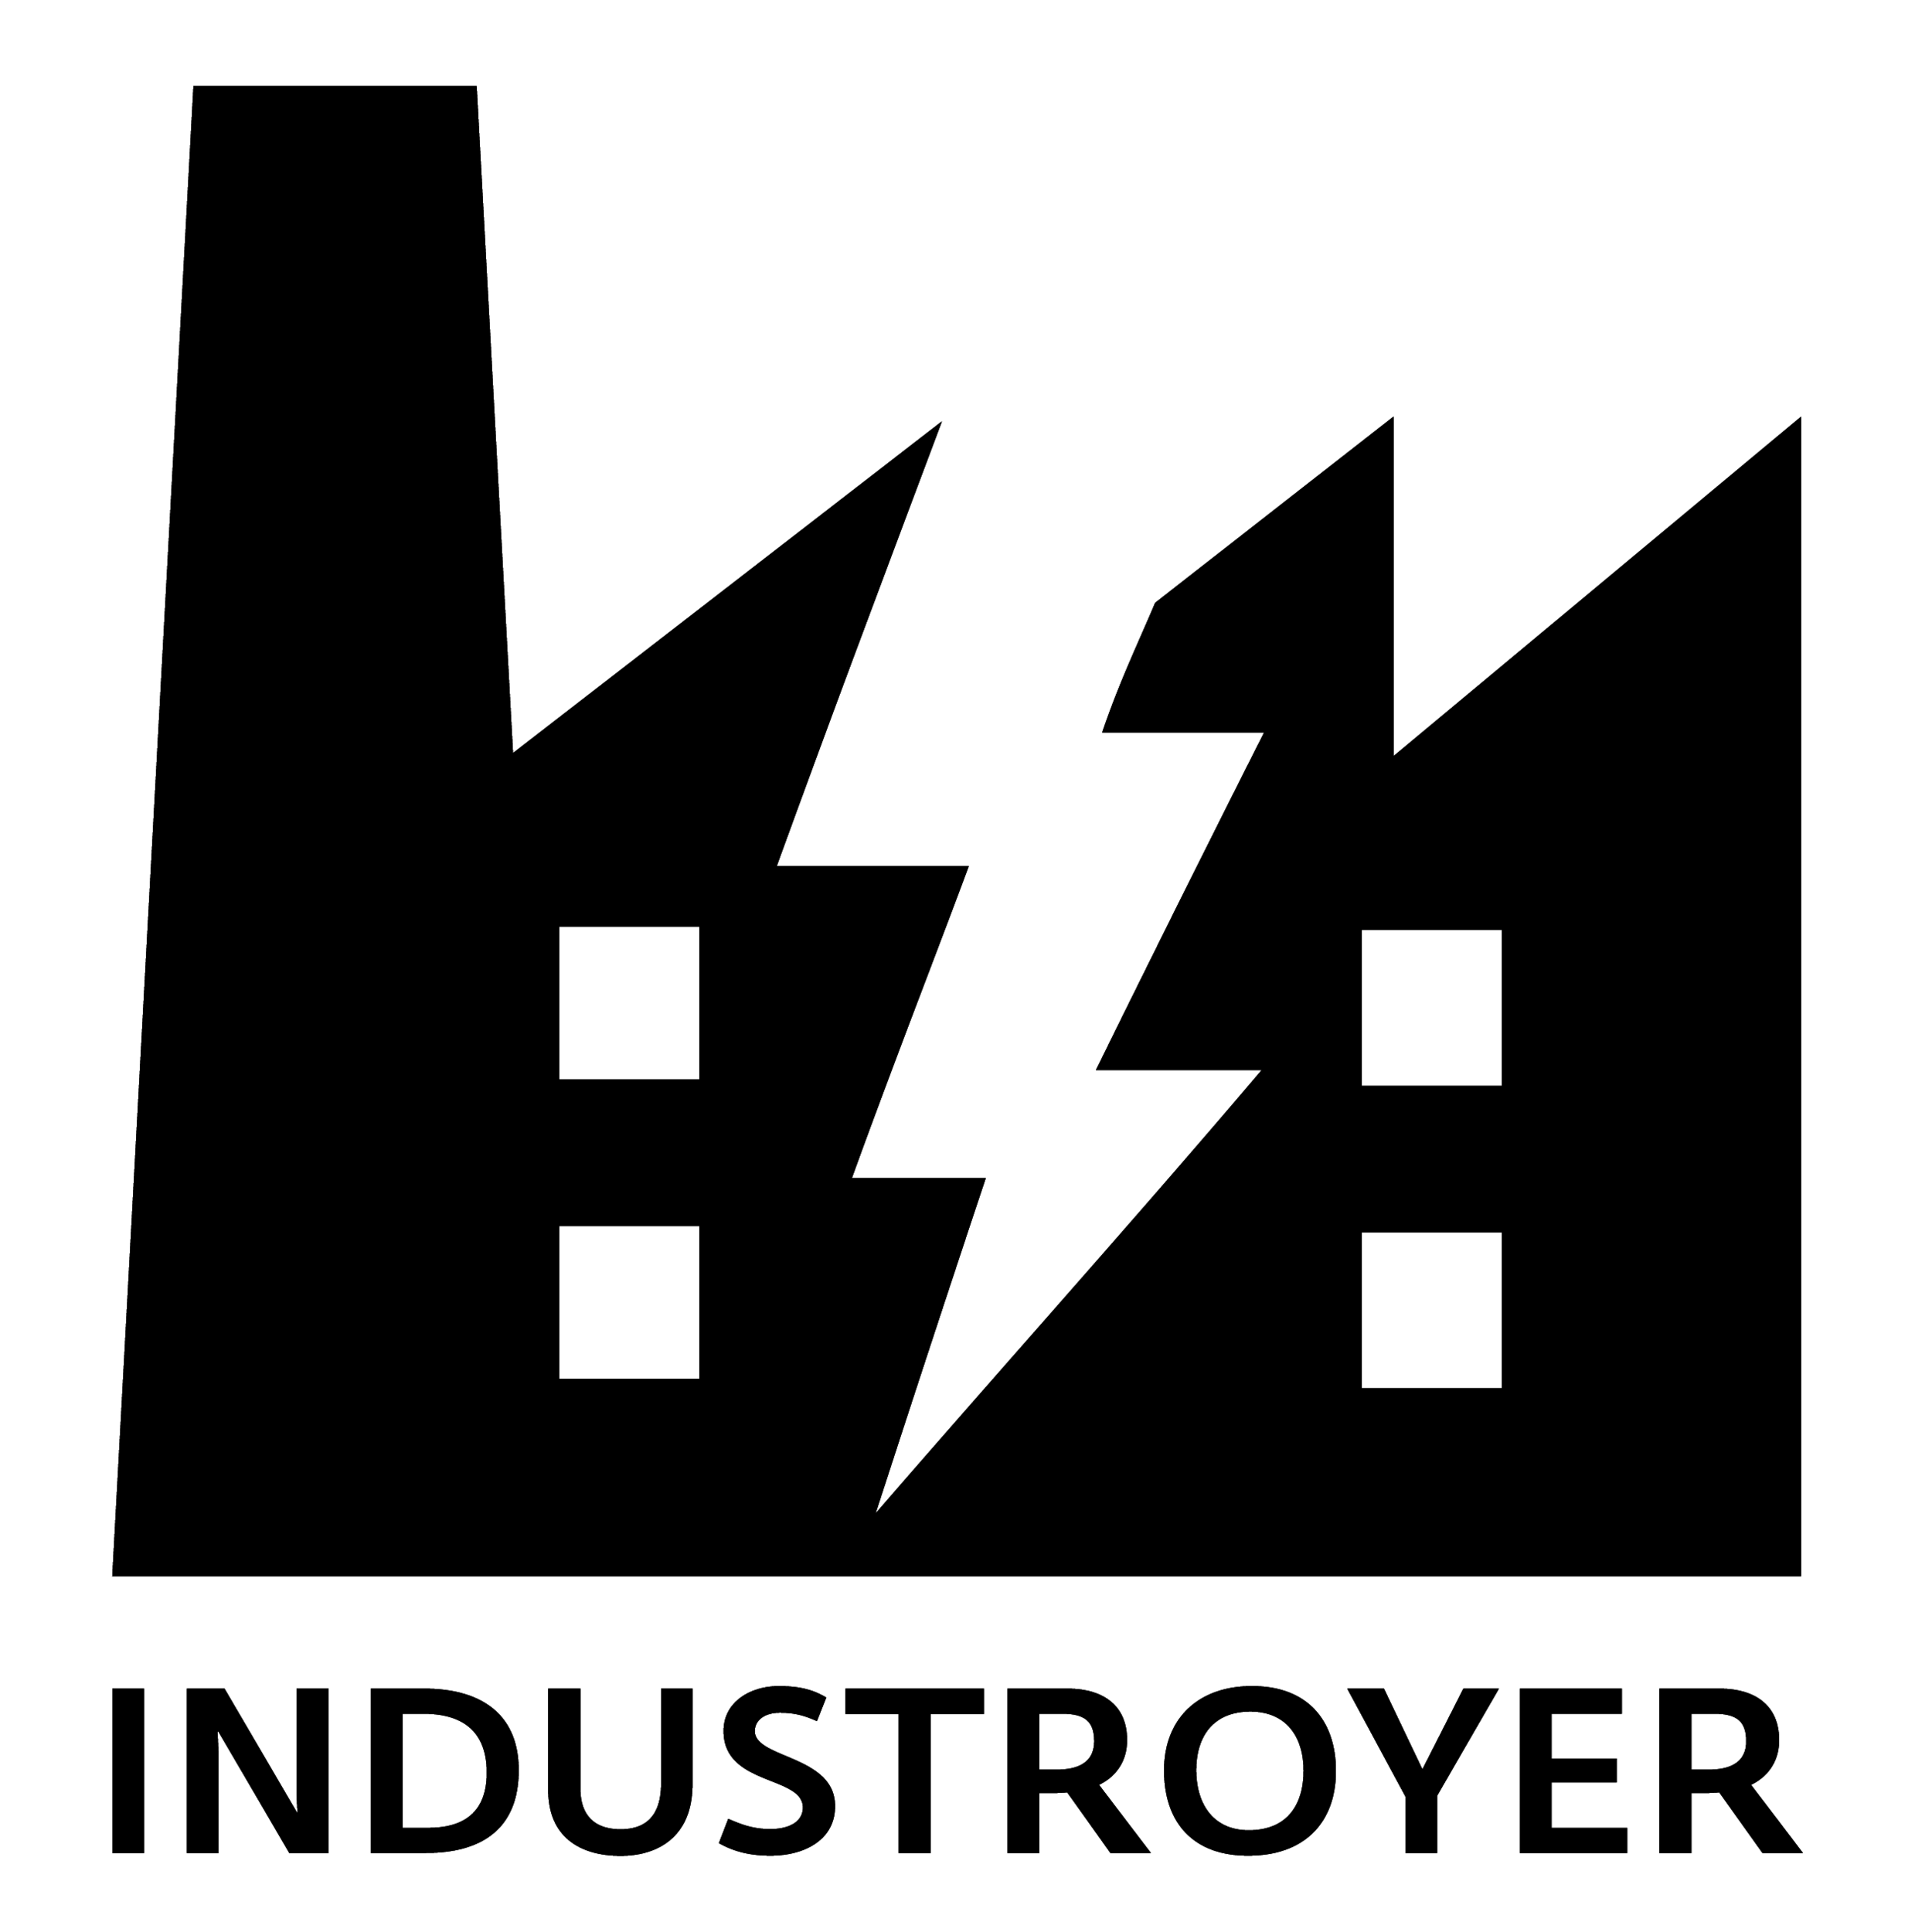 Industroyer_icon_WHITE.png